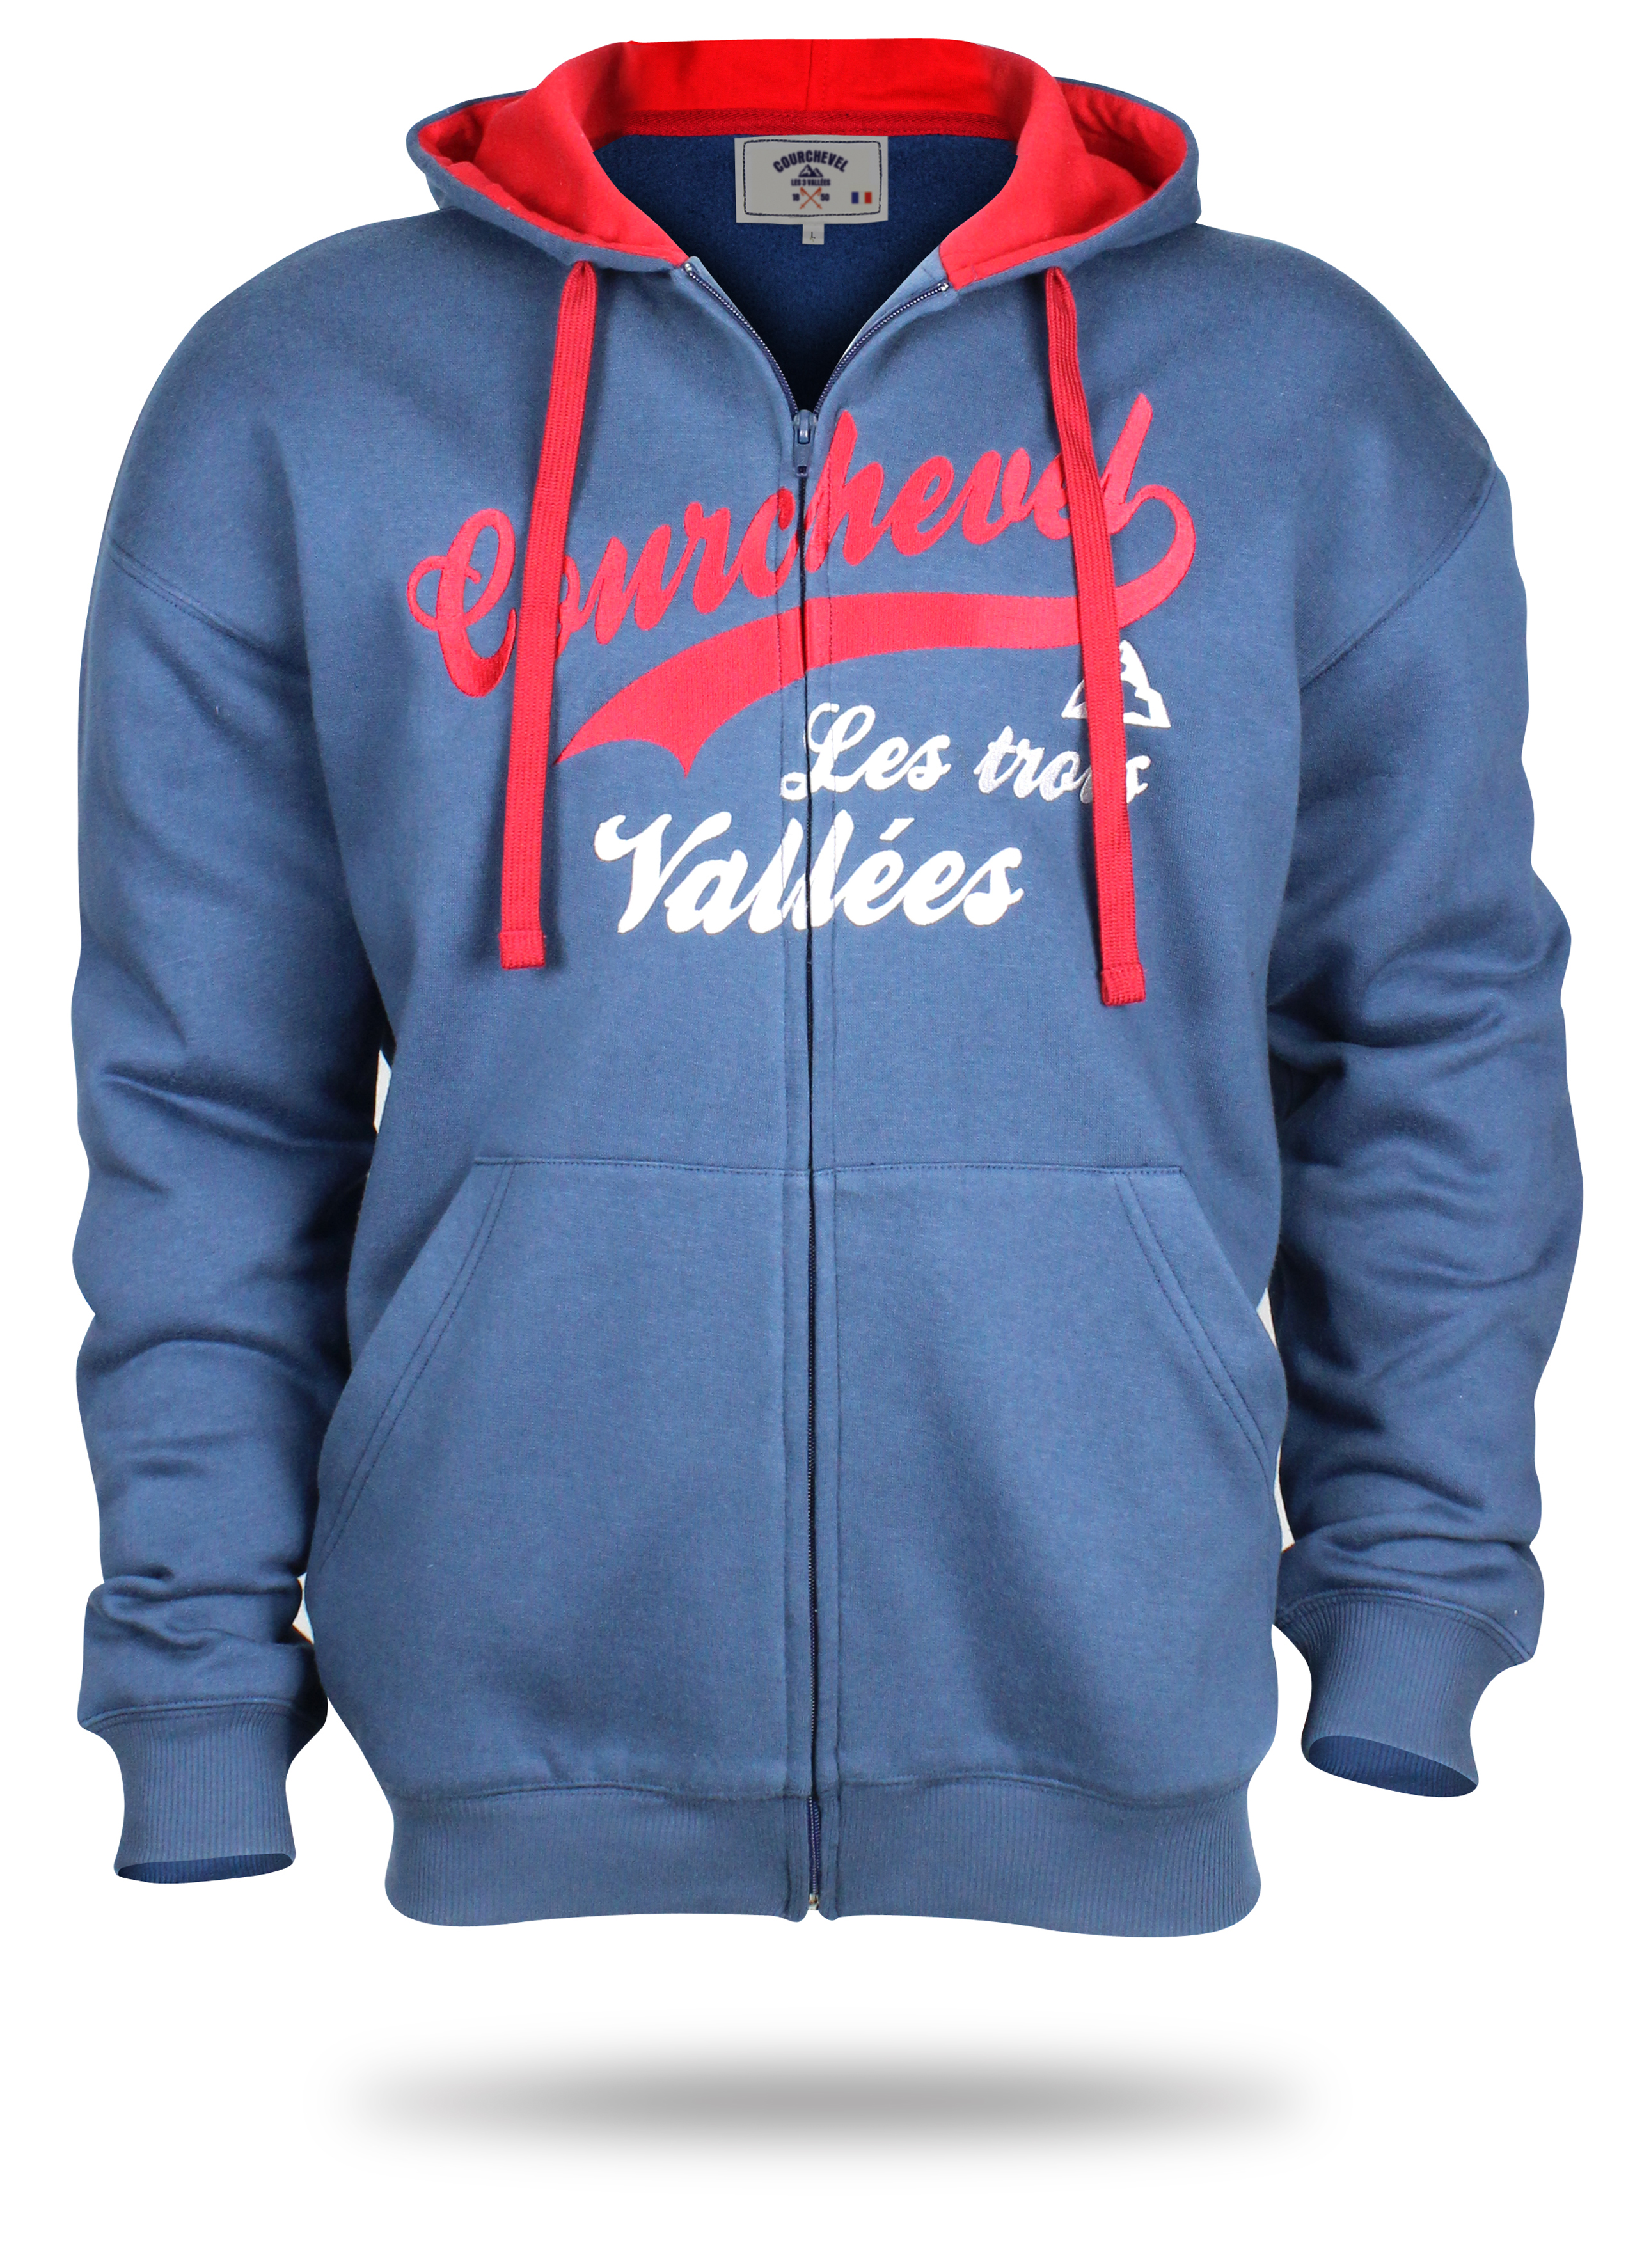 Blue and red Hoody with logo Courchevel